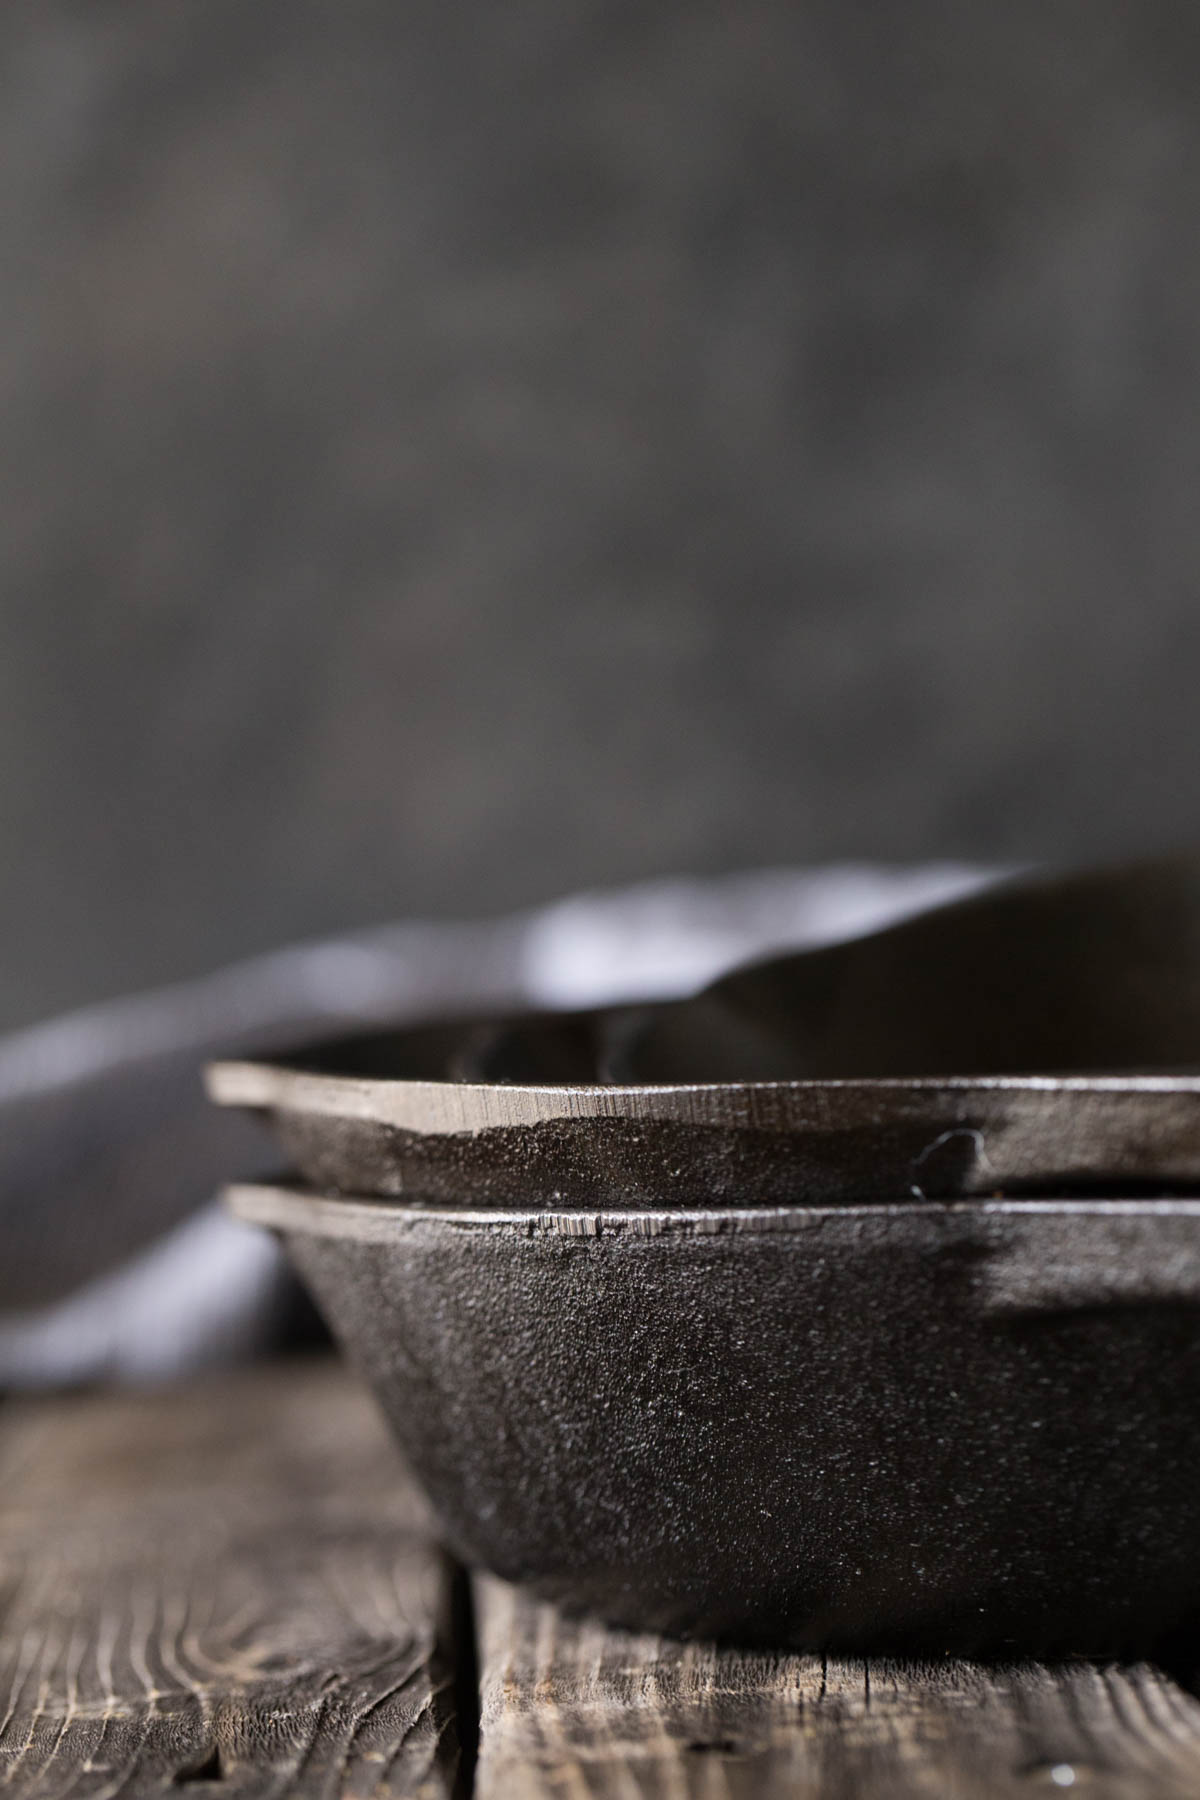 A close up view of cast iron skillets from the side with a grey background.